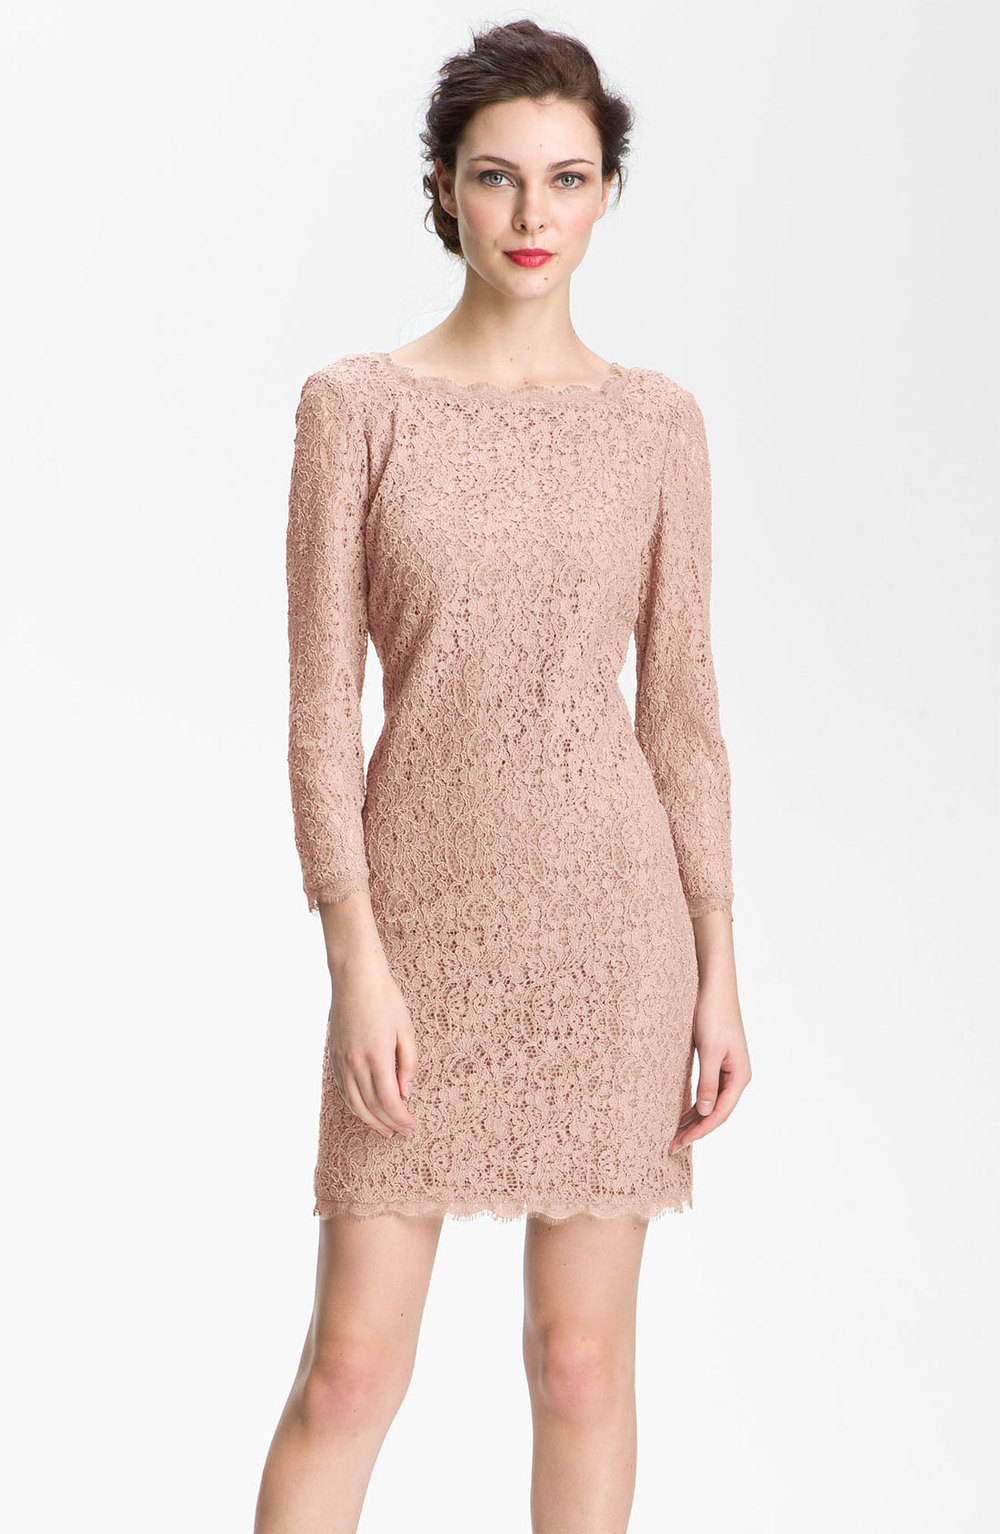 Adrianna Papell Blush Lace Dress